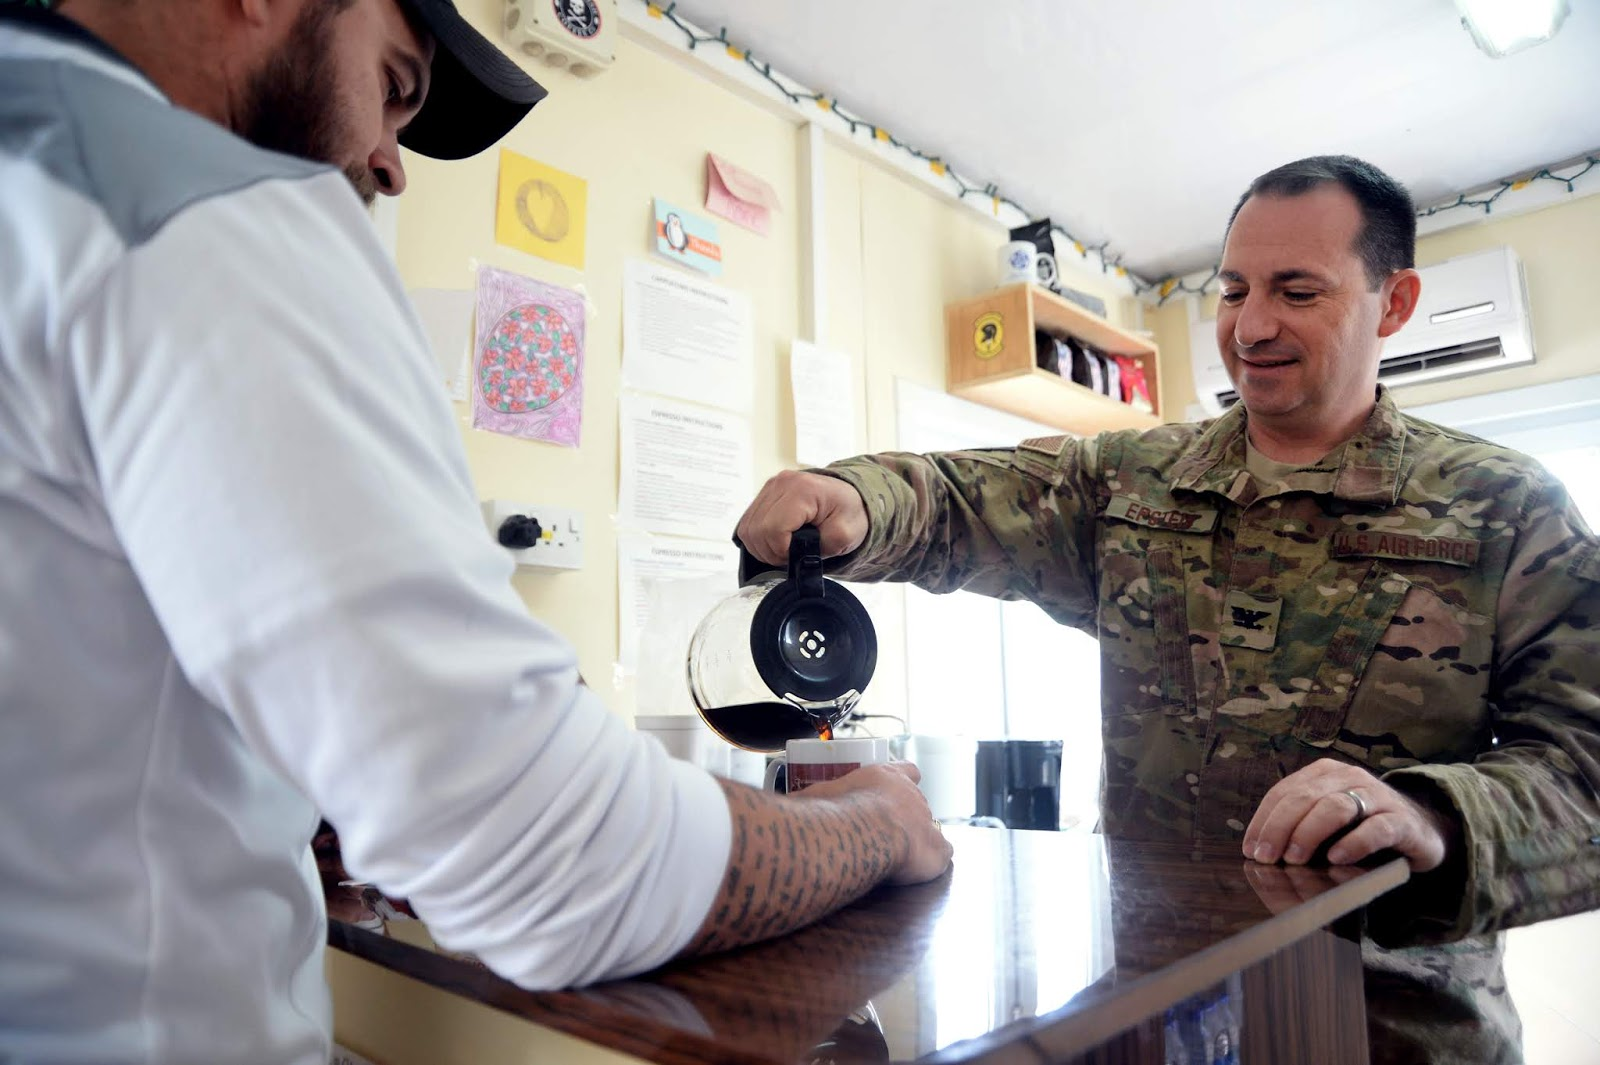 a man in military uniform pours coffee into a cup held by a man in civilian attire